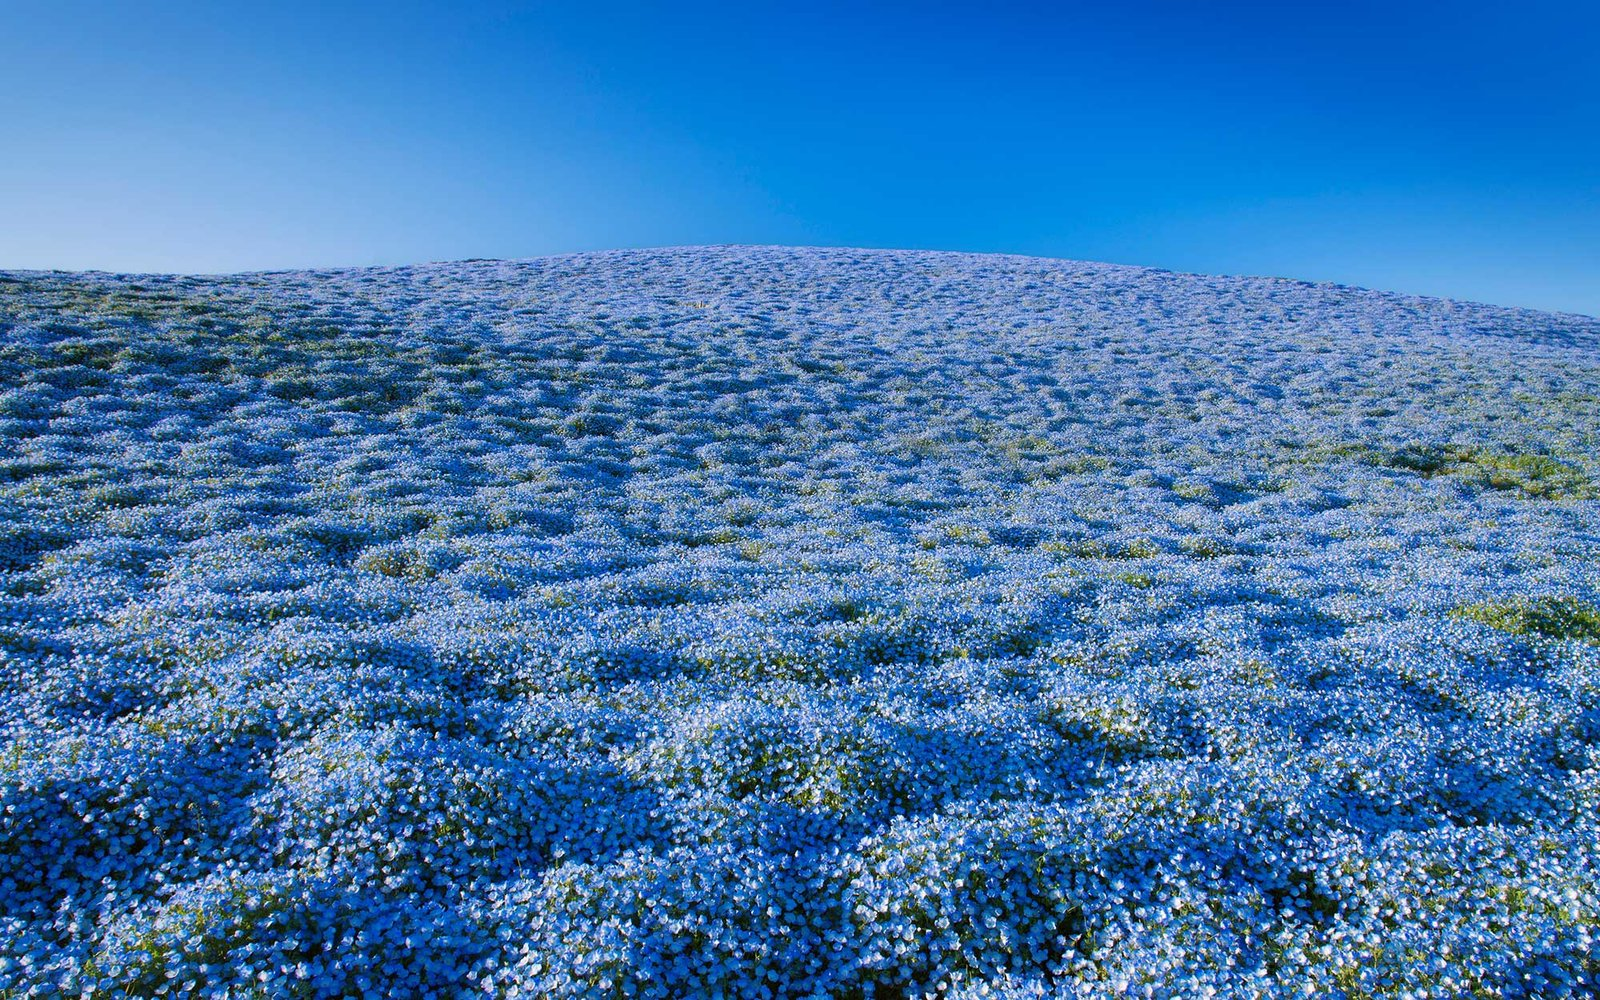 Over 4 Million Blue Flowers are Blooming in a Japanese Park Right Now